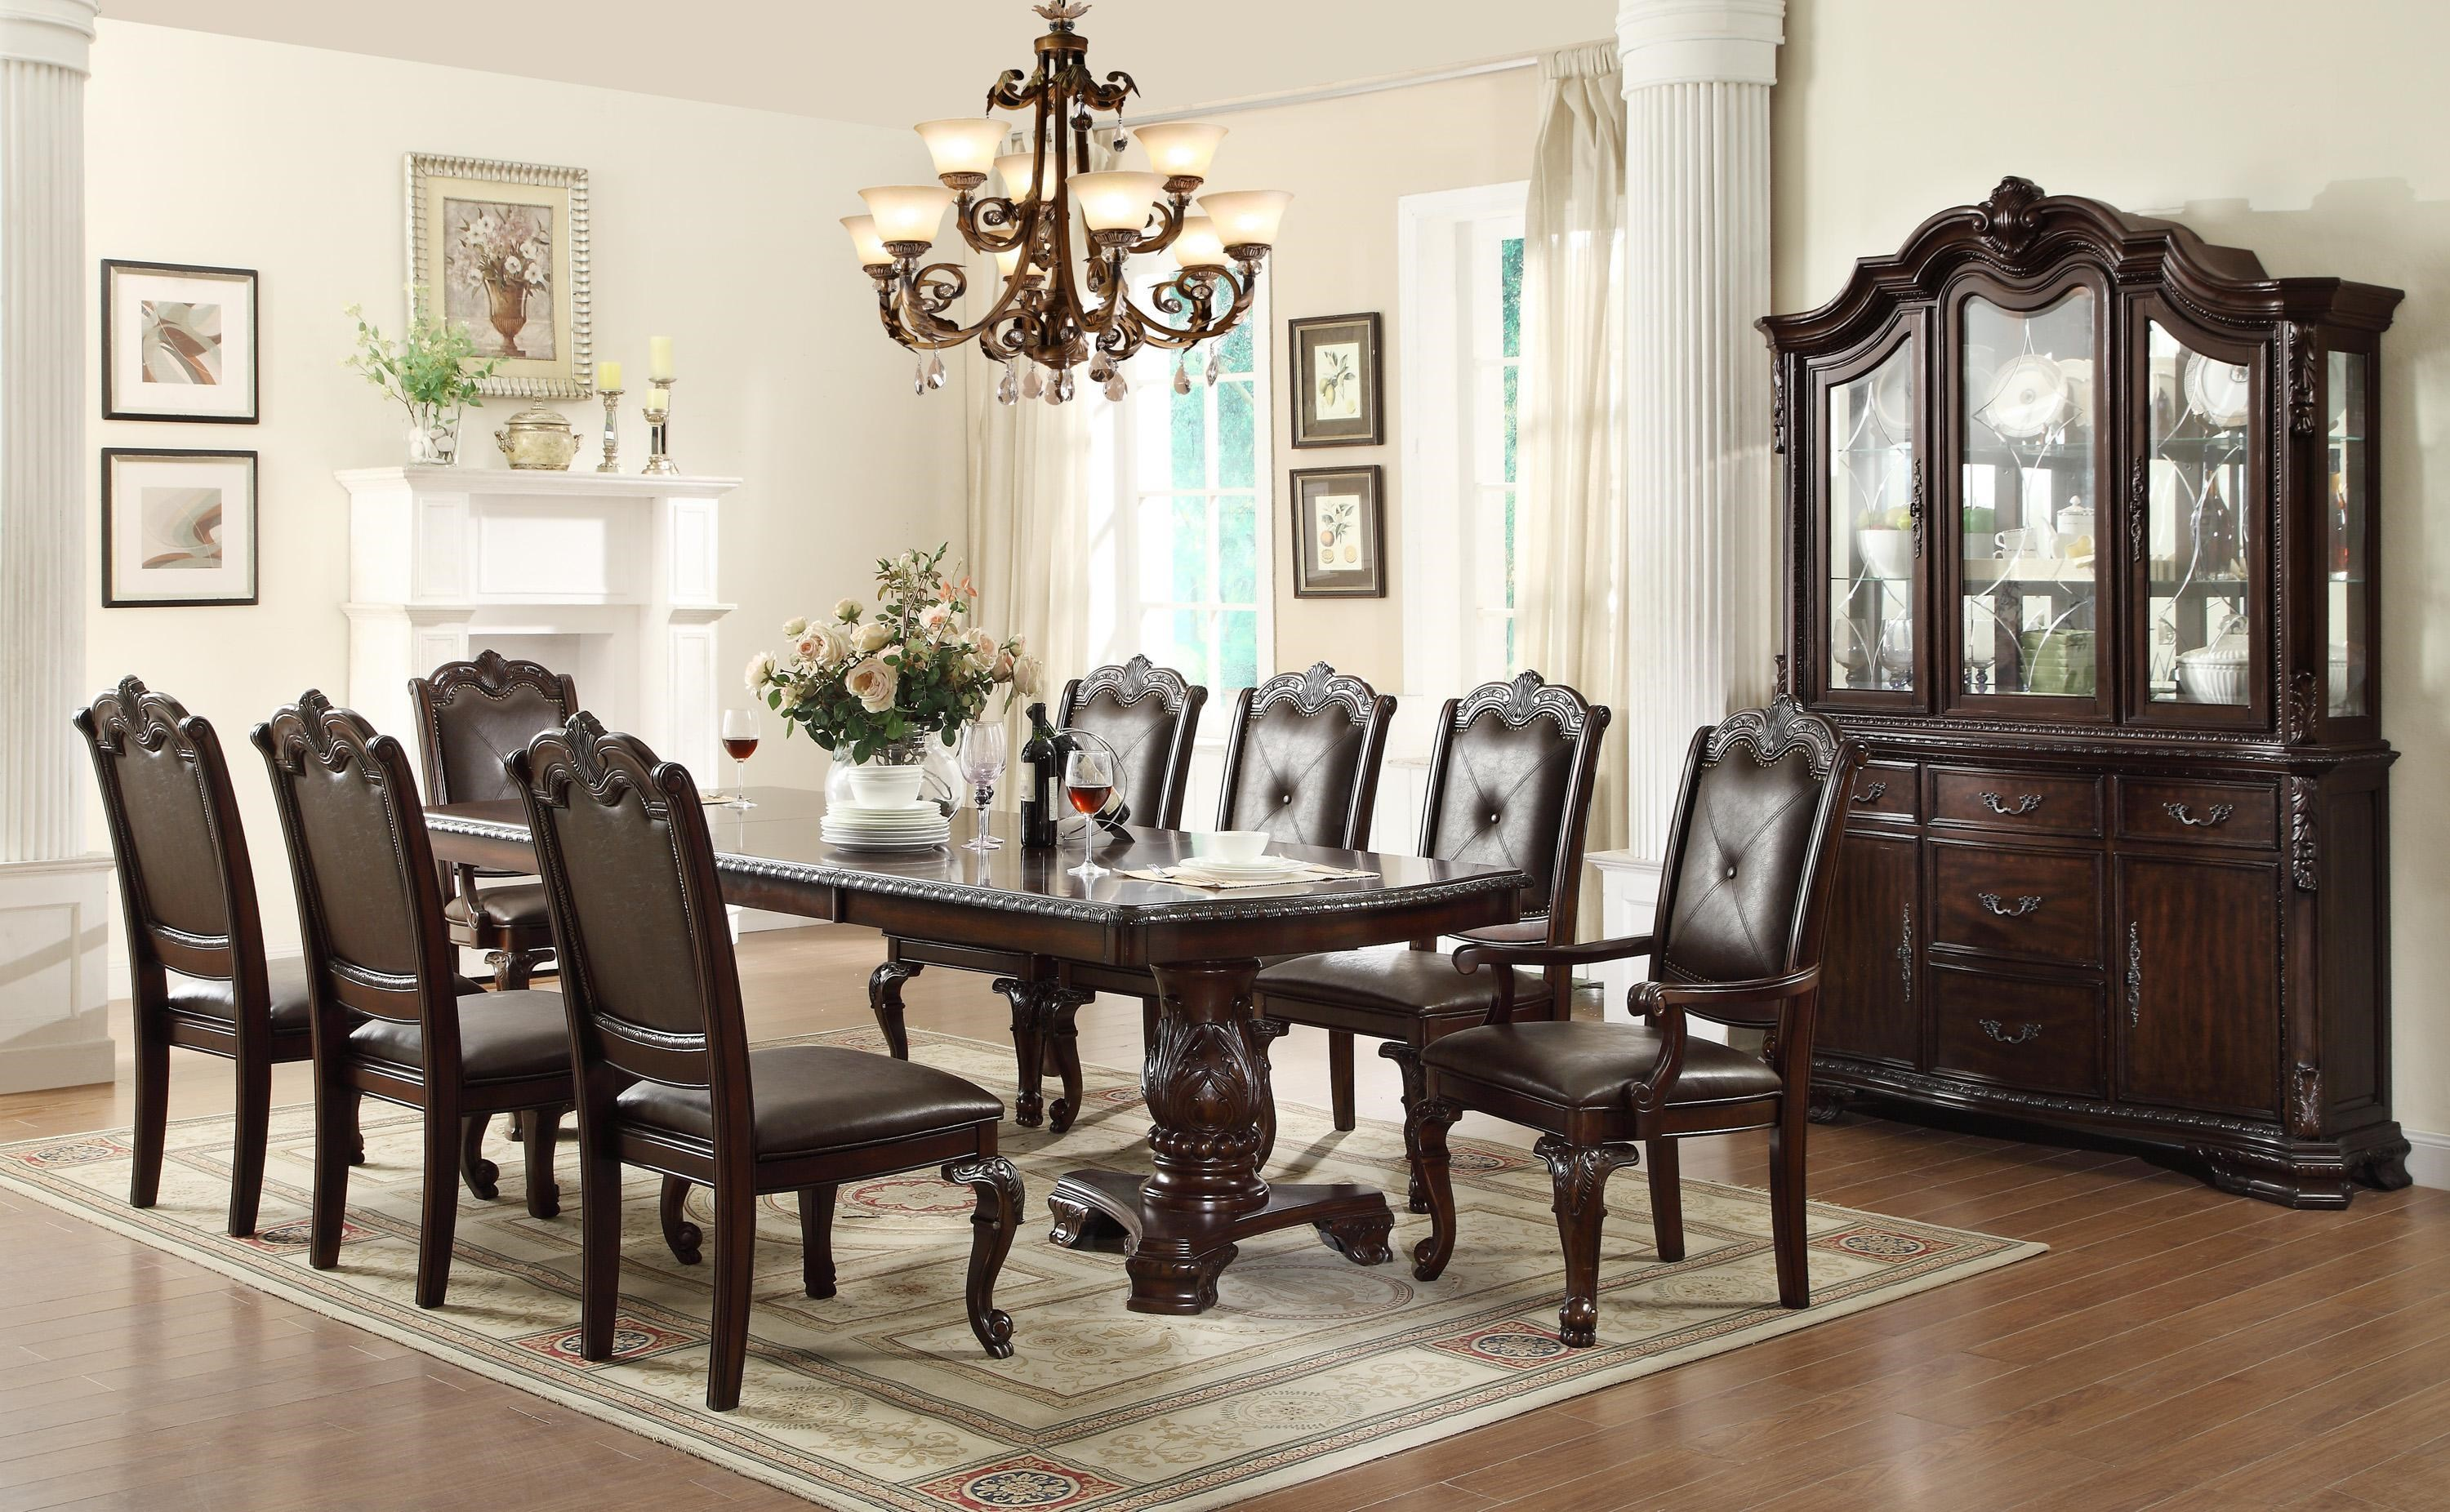 Kiera 5 Piece Table and Chair Set by Crown Mark at Darvin Furniture